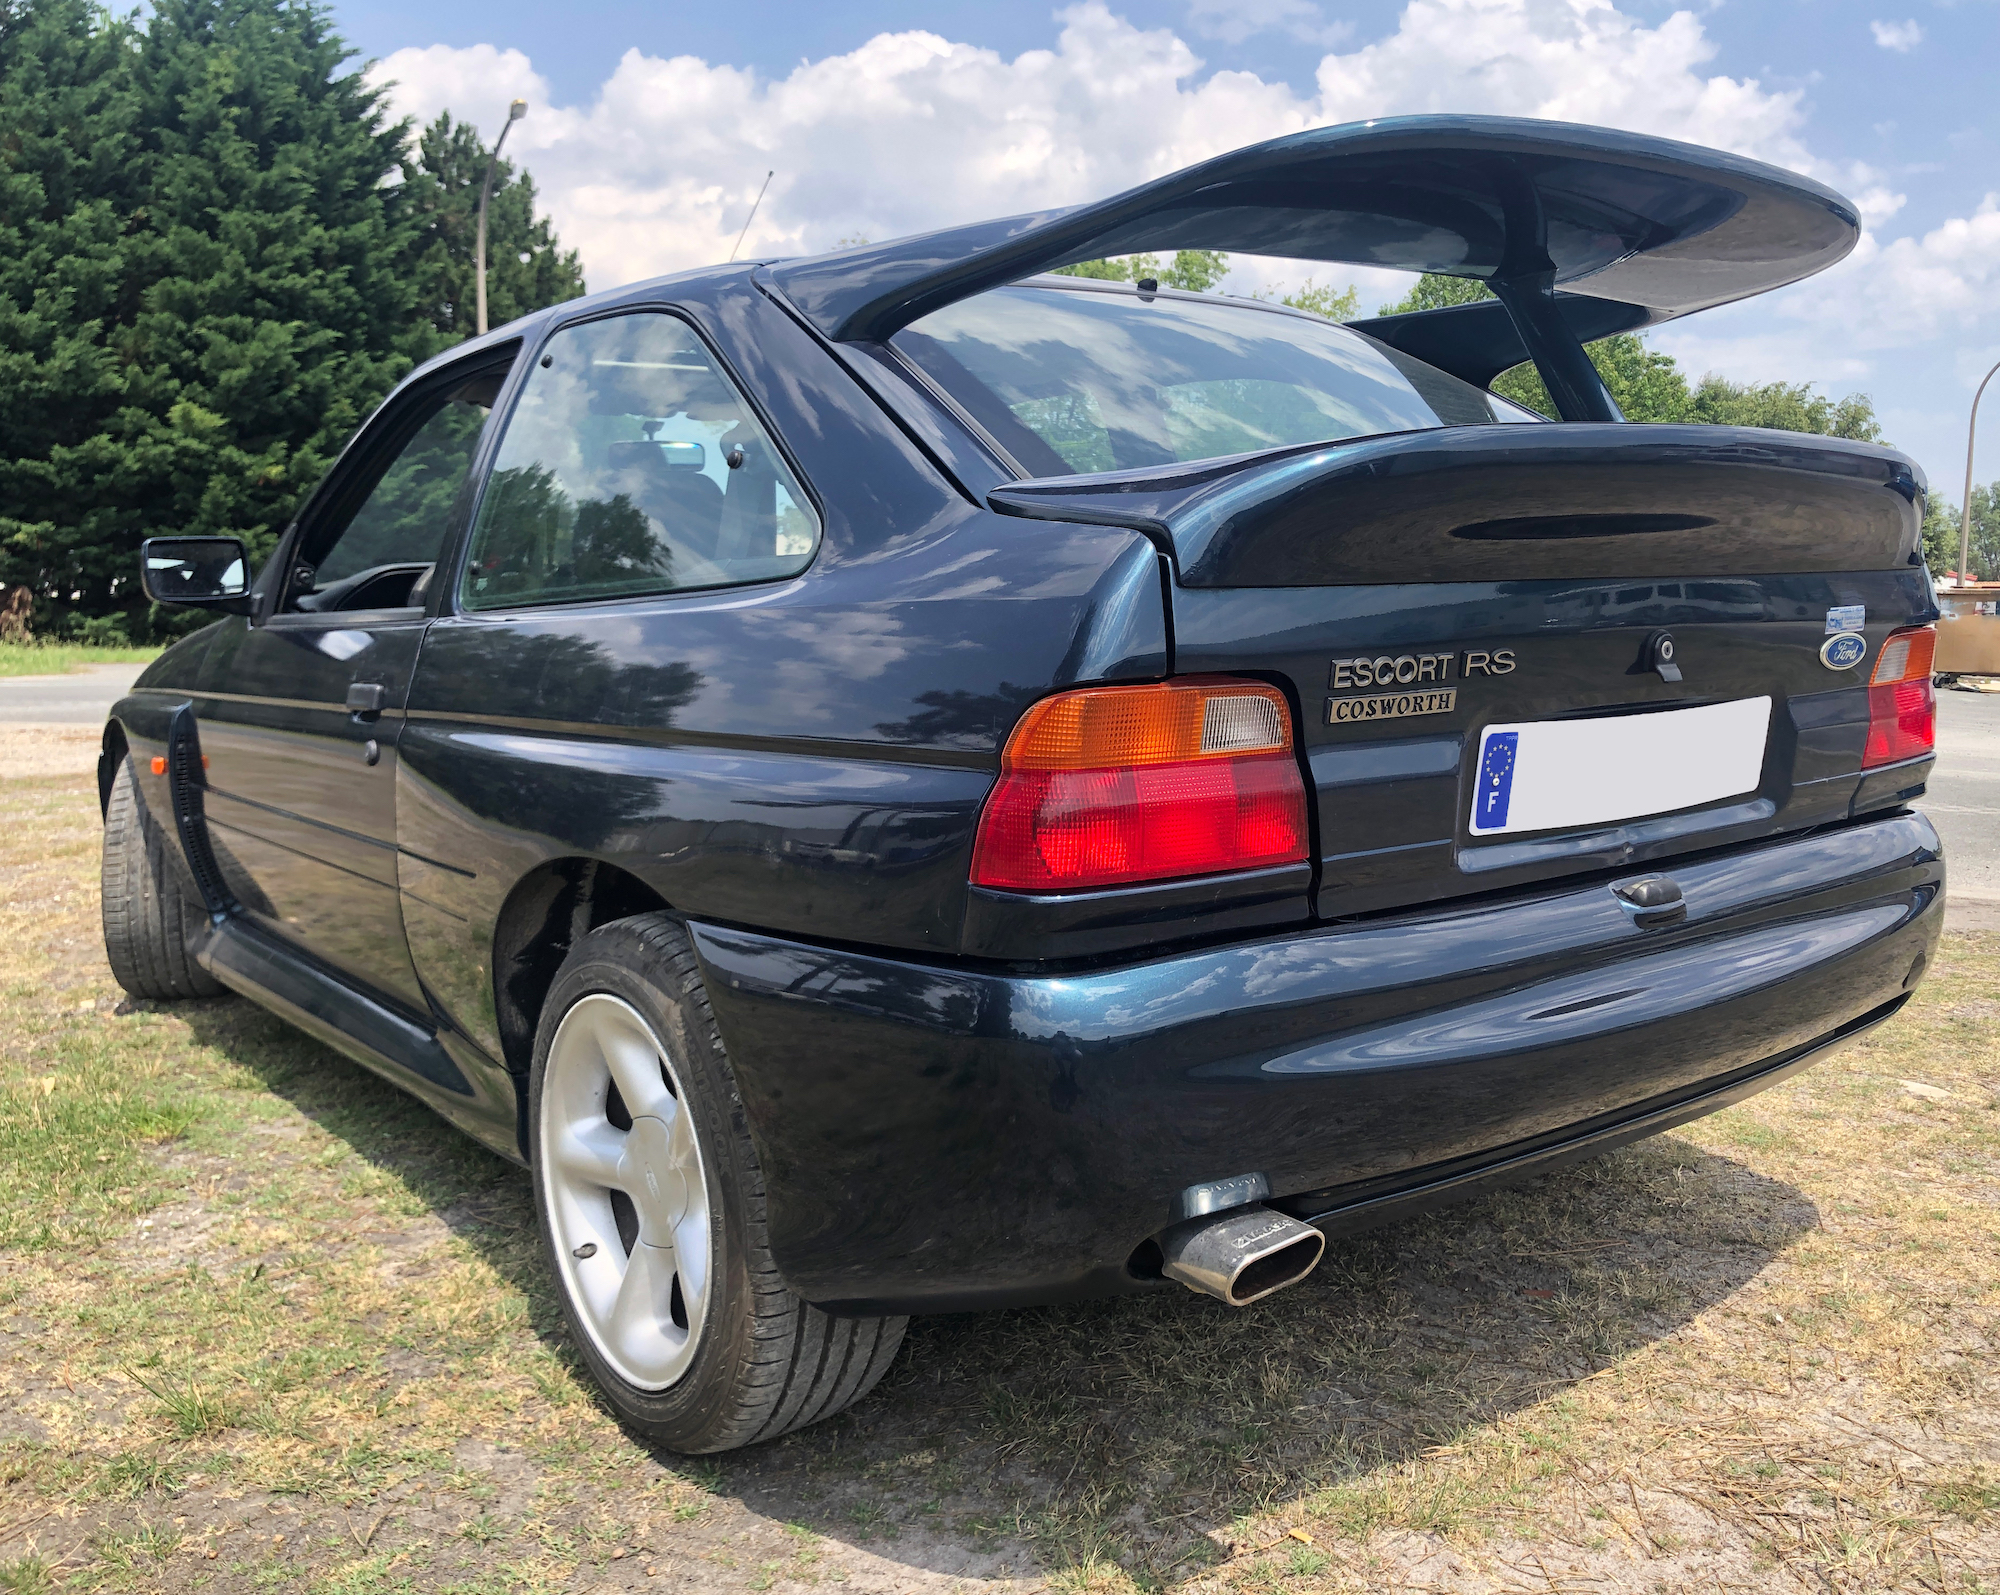 A vendre Ford Escort RS Cosworth 1ère main de 93